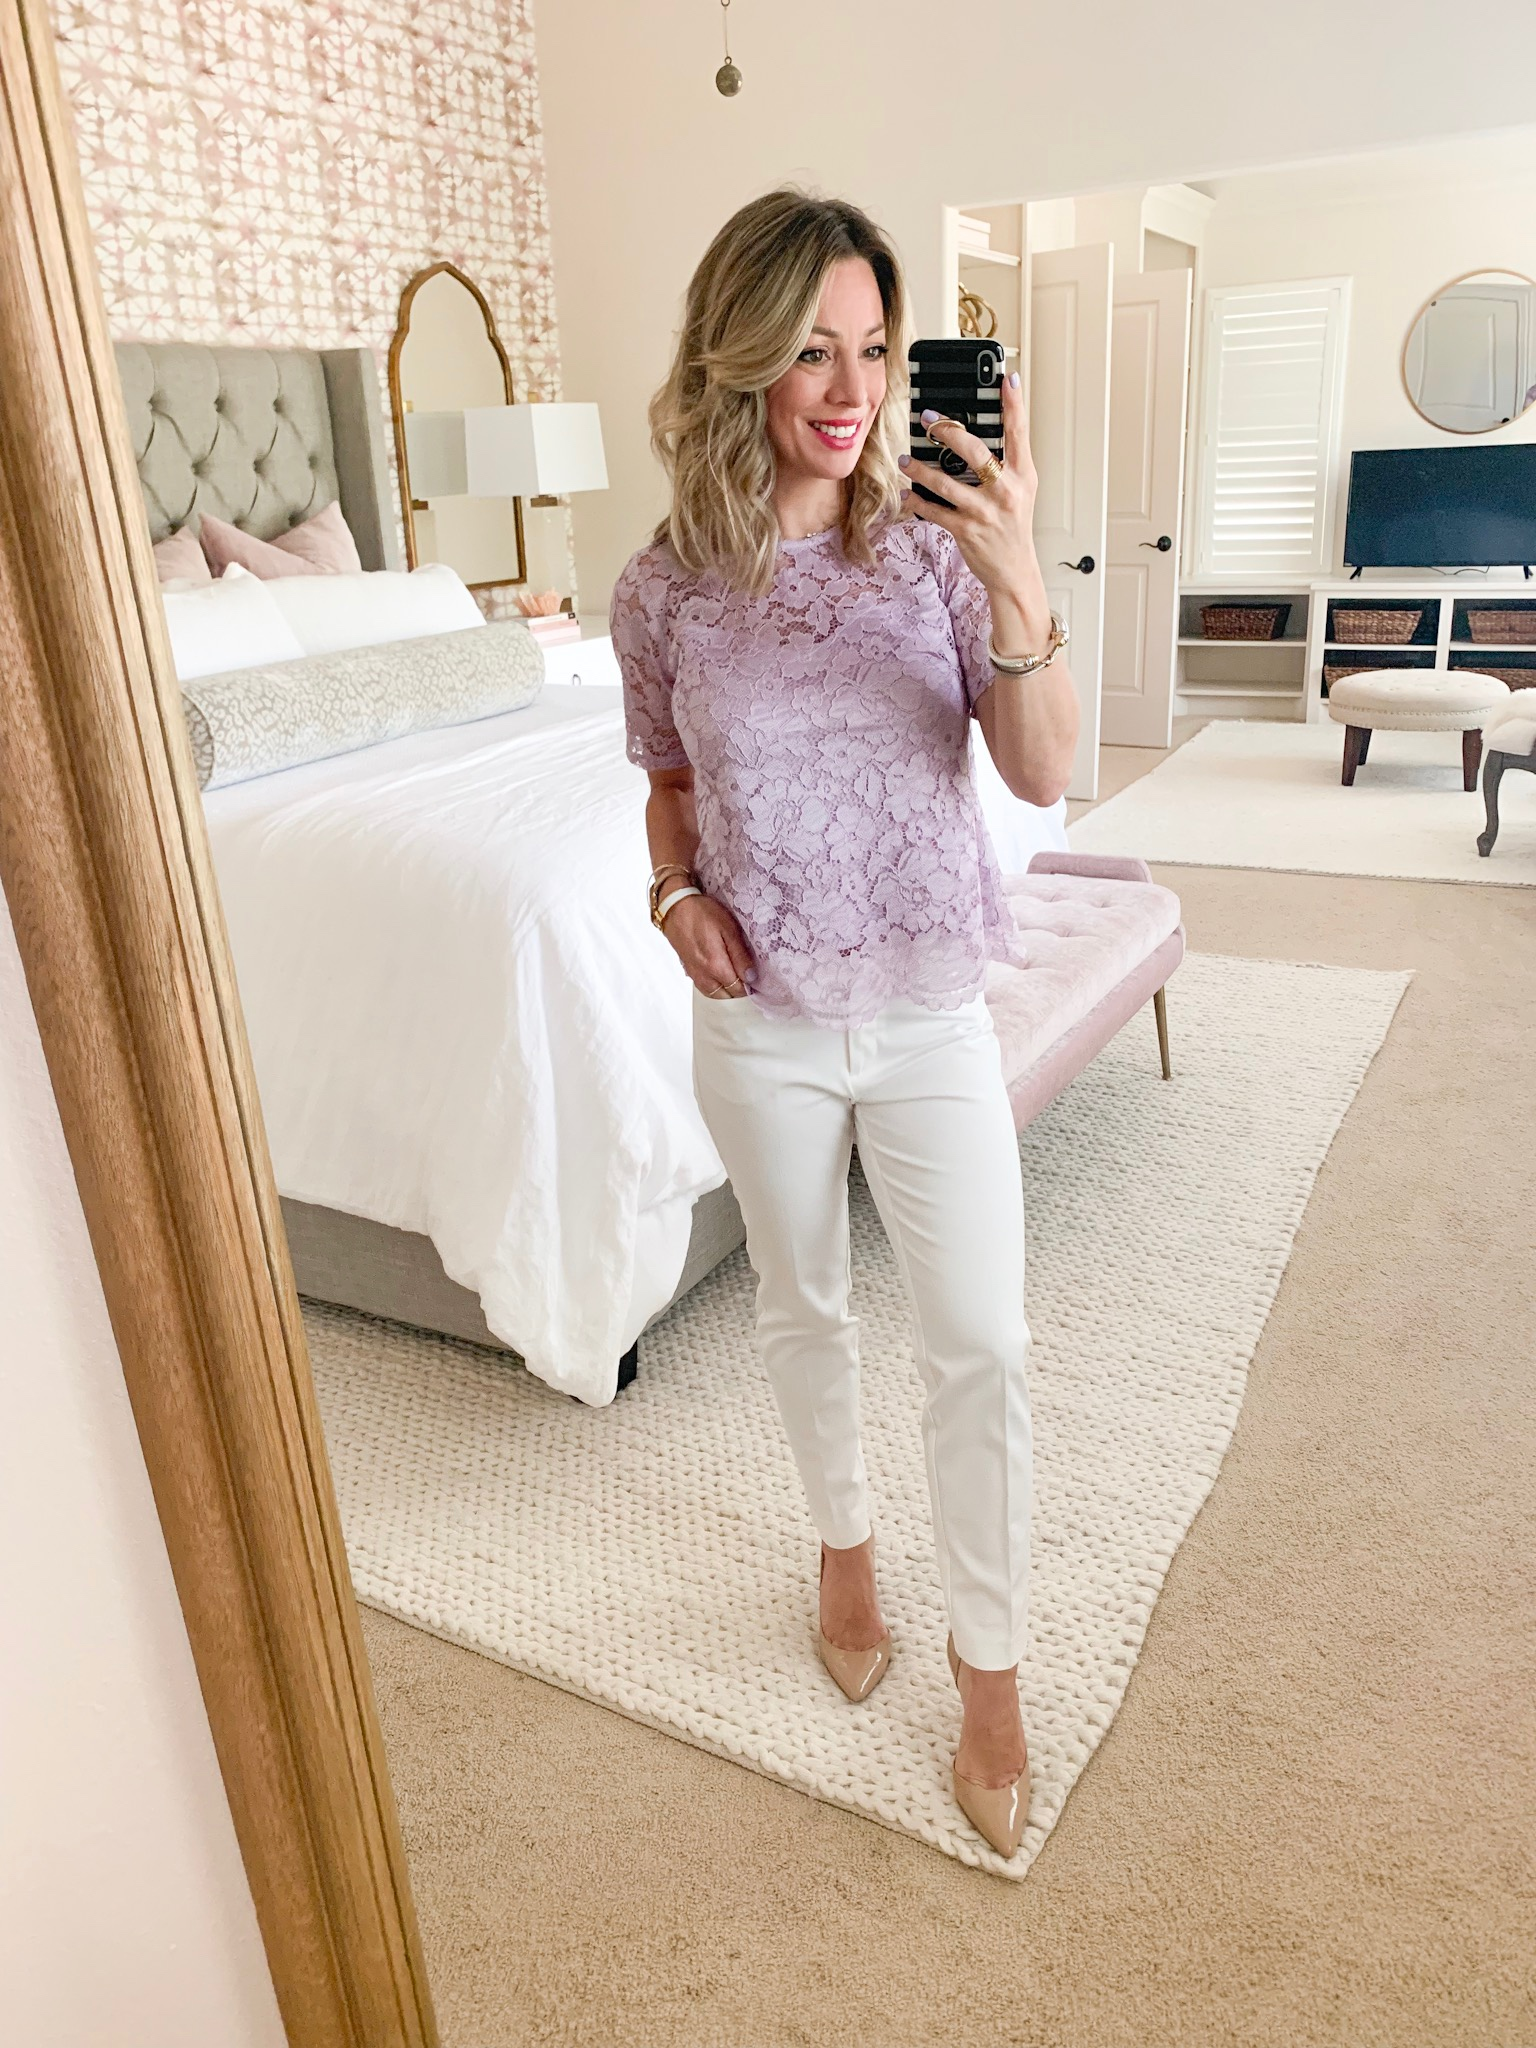 White pants and lavender lace top